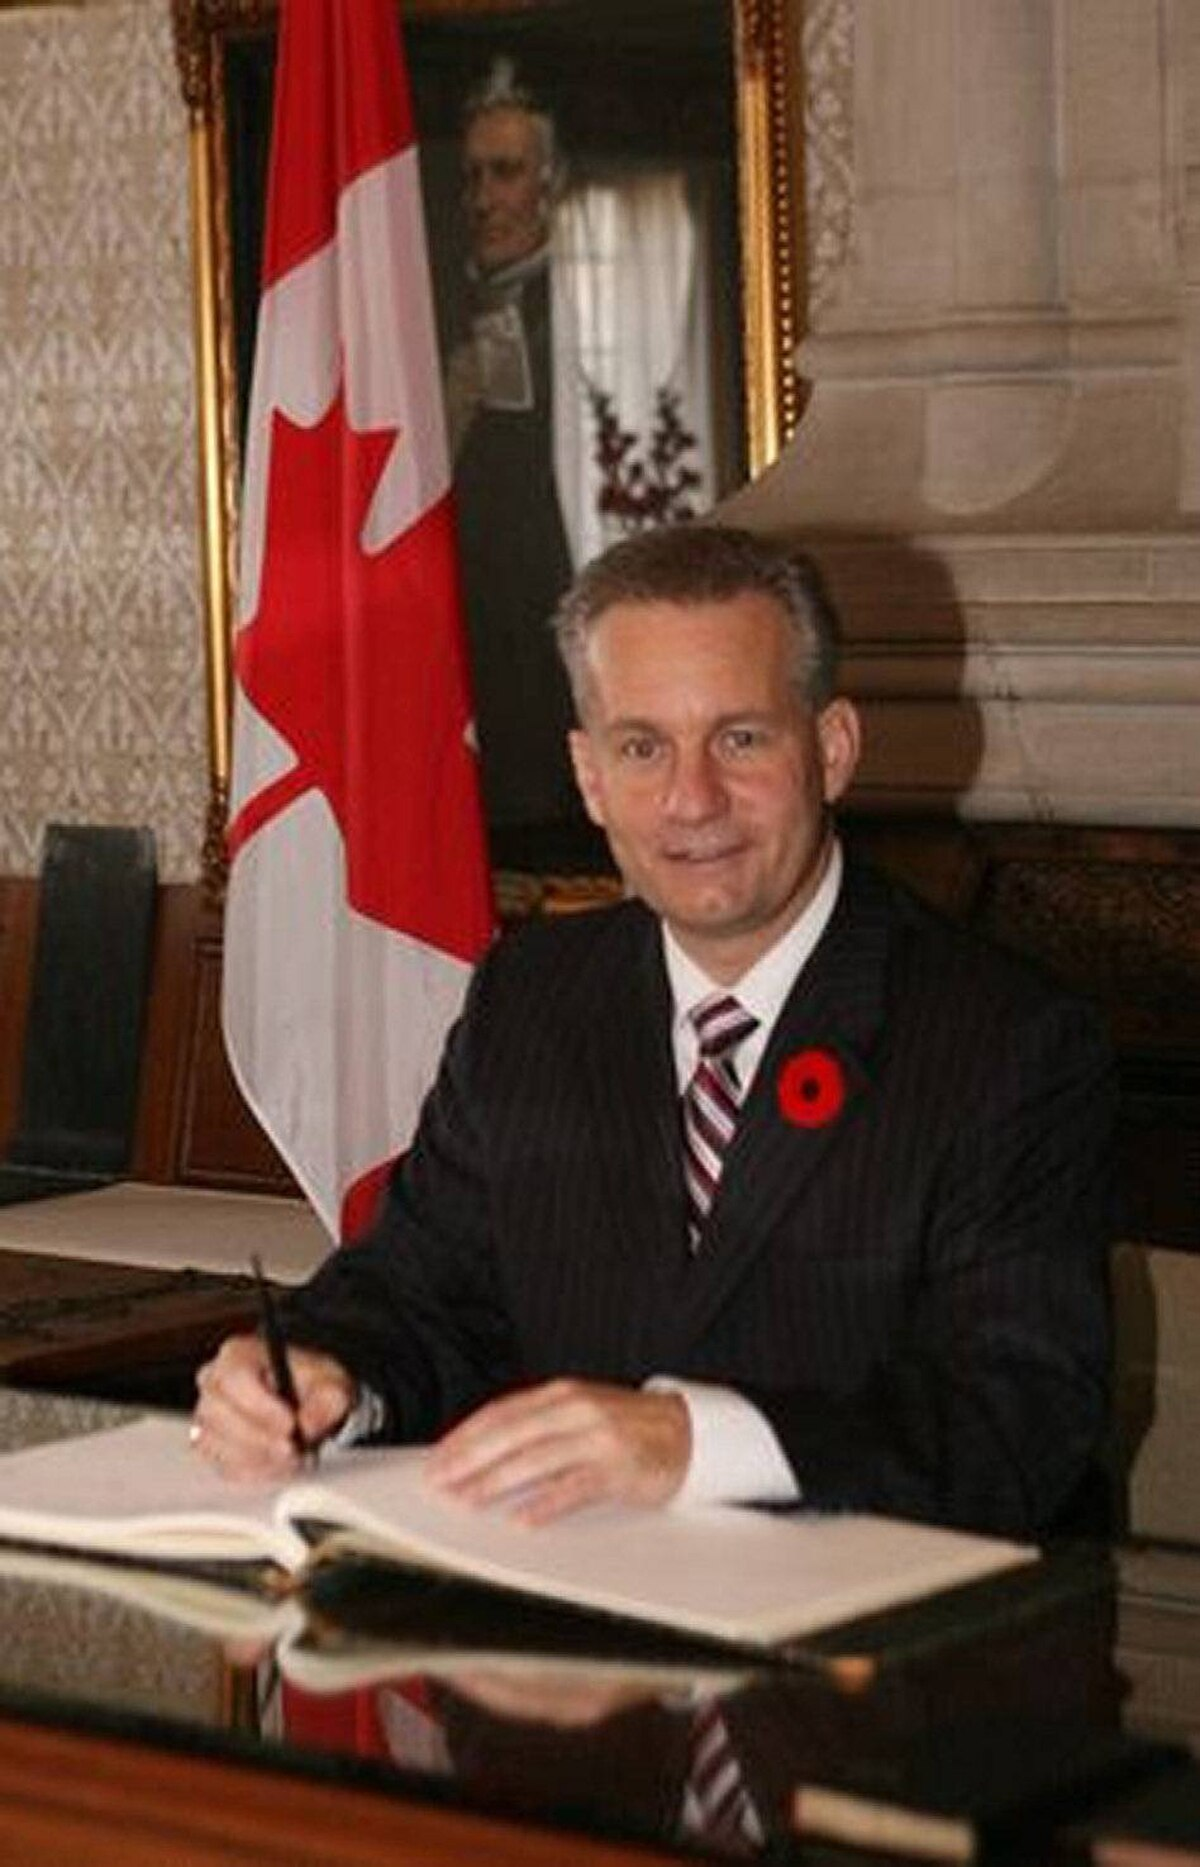 ED FAST, MINISTER OF INTERNATIONAL TRADE The departure of senior B.C. cabinet ministers Stockwell Day and Chuck Strahl created openings for two little-known MPs to move up. Abbotsford lawyer Ed Fast, first elected in 2006, jumps into the trade portfolio at a time when Canada is negotiating a sweeping trade deal with the European Union and is looking at new border measures with the United States. Almost always smiling, Mr. Fast quietly became a popular MP on Parliament Hill.